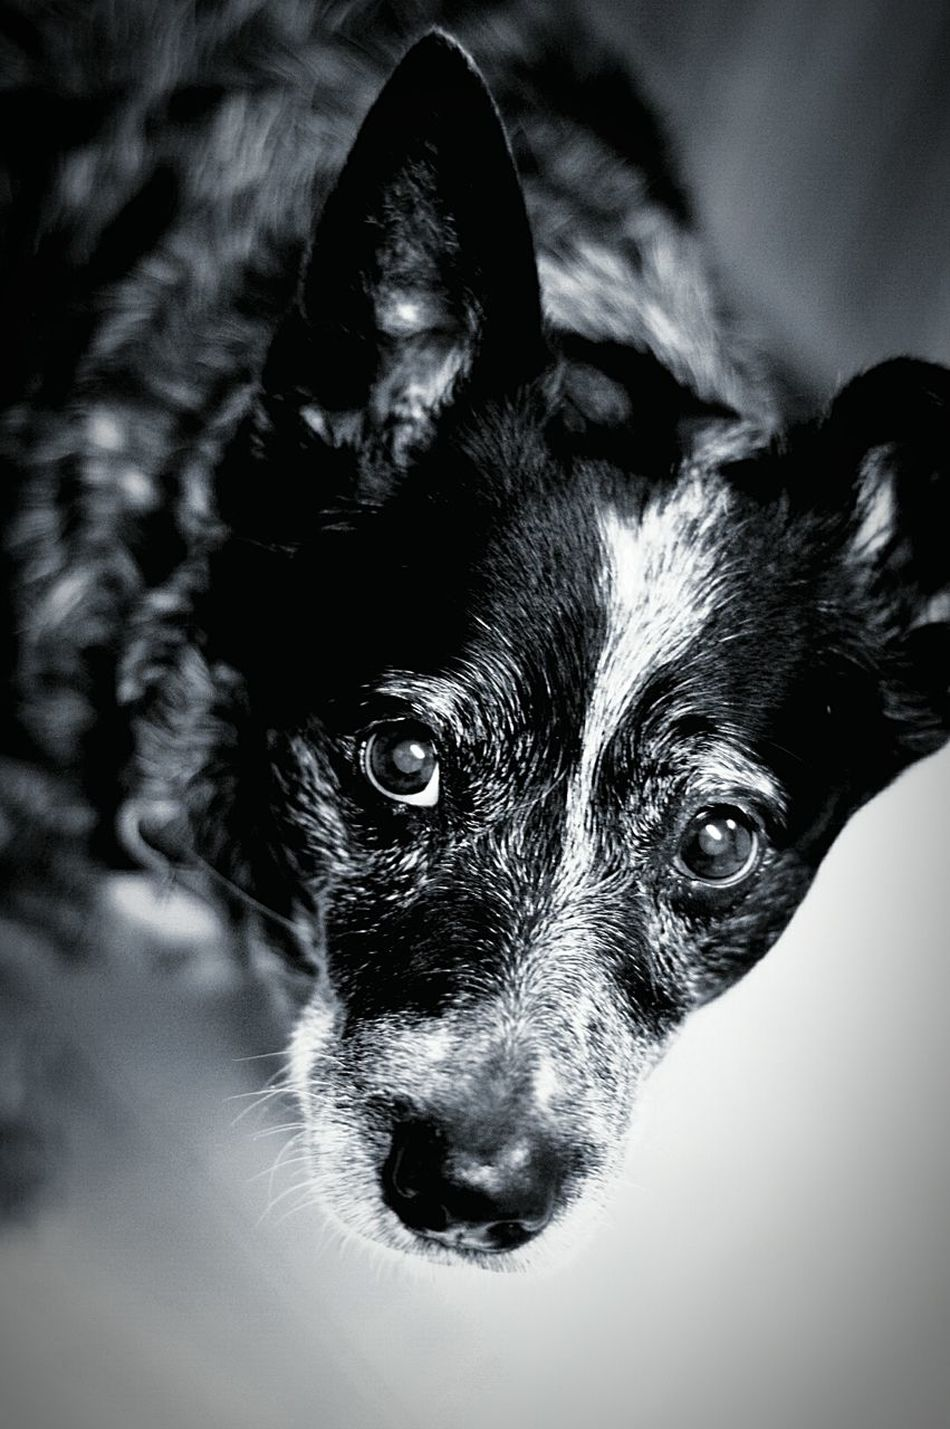 Pets Animal Themes Dog One Animal Close-up EyeEm Blue Heeler Eyeem Market Fine Art Eyeem Marketplace EyeEm Gallery Growth Black & White Black And White Photography Black And White Collection  Dogs Of EyeEm Dogslife Dogs Mans Best Friend Australian Cattle Dog Animals Collection Love Family Pet Best Of EyeEm EyeEmNewHere